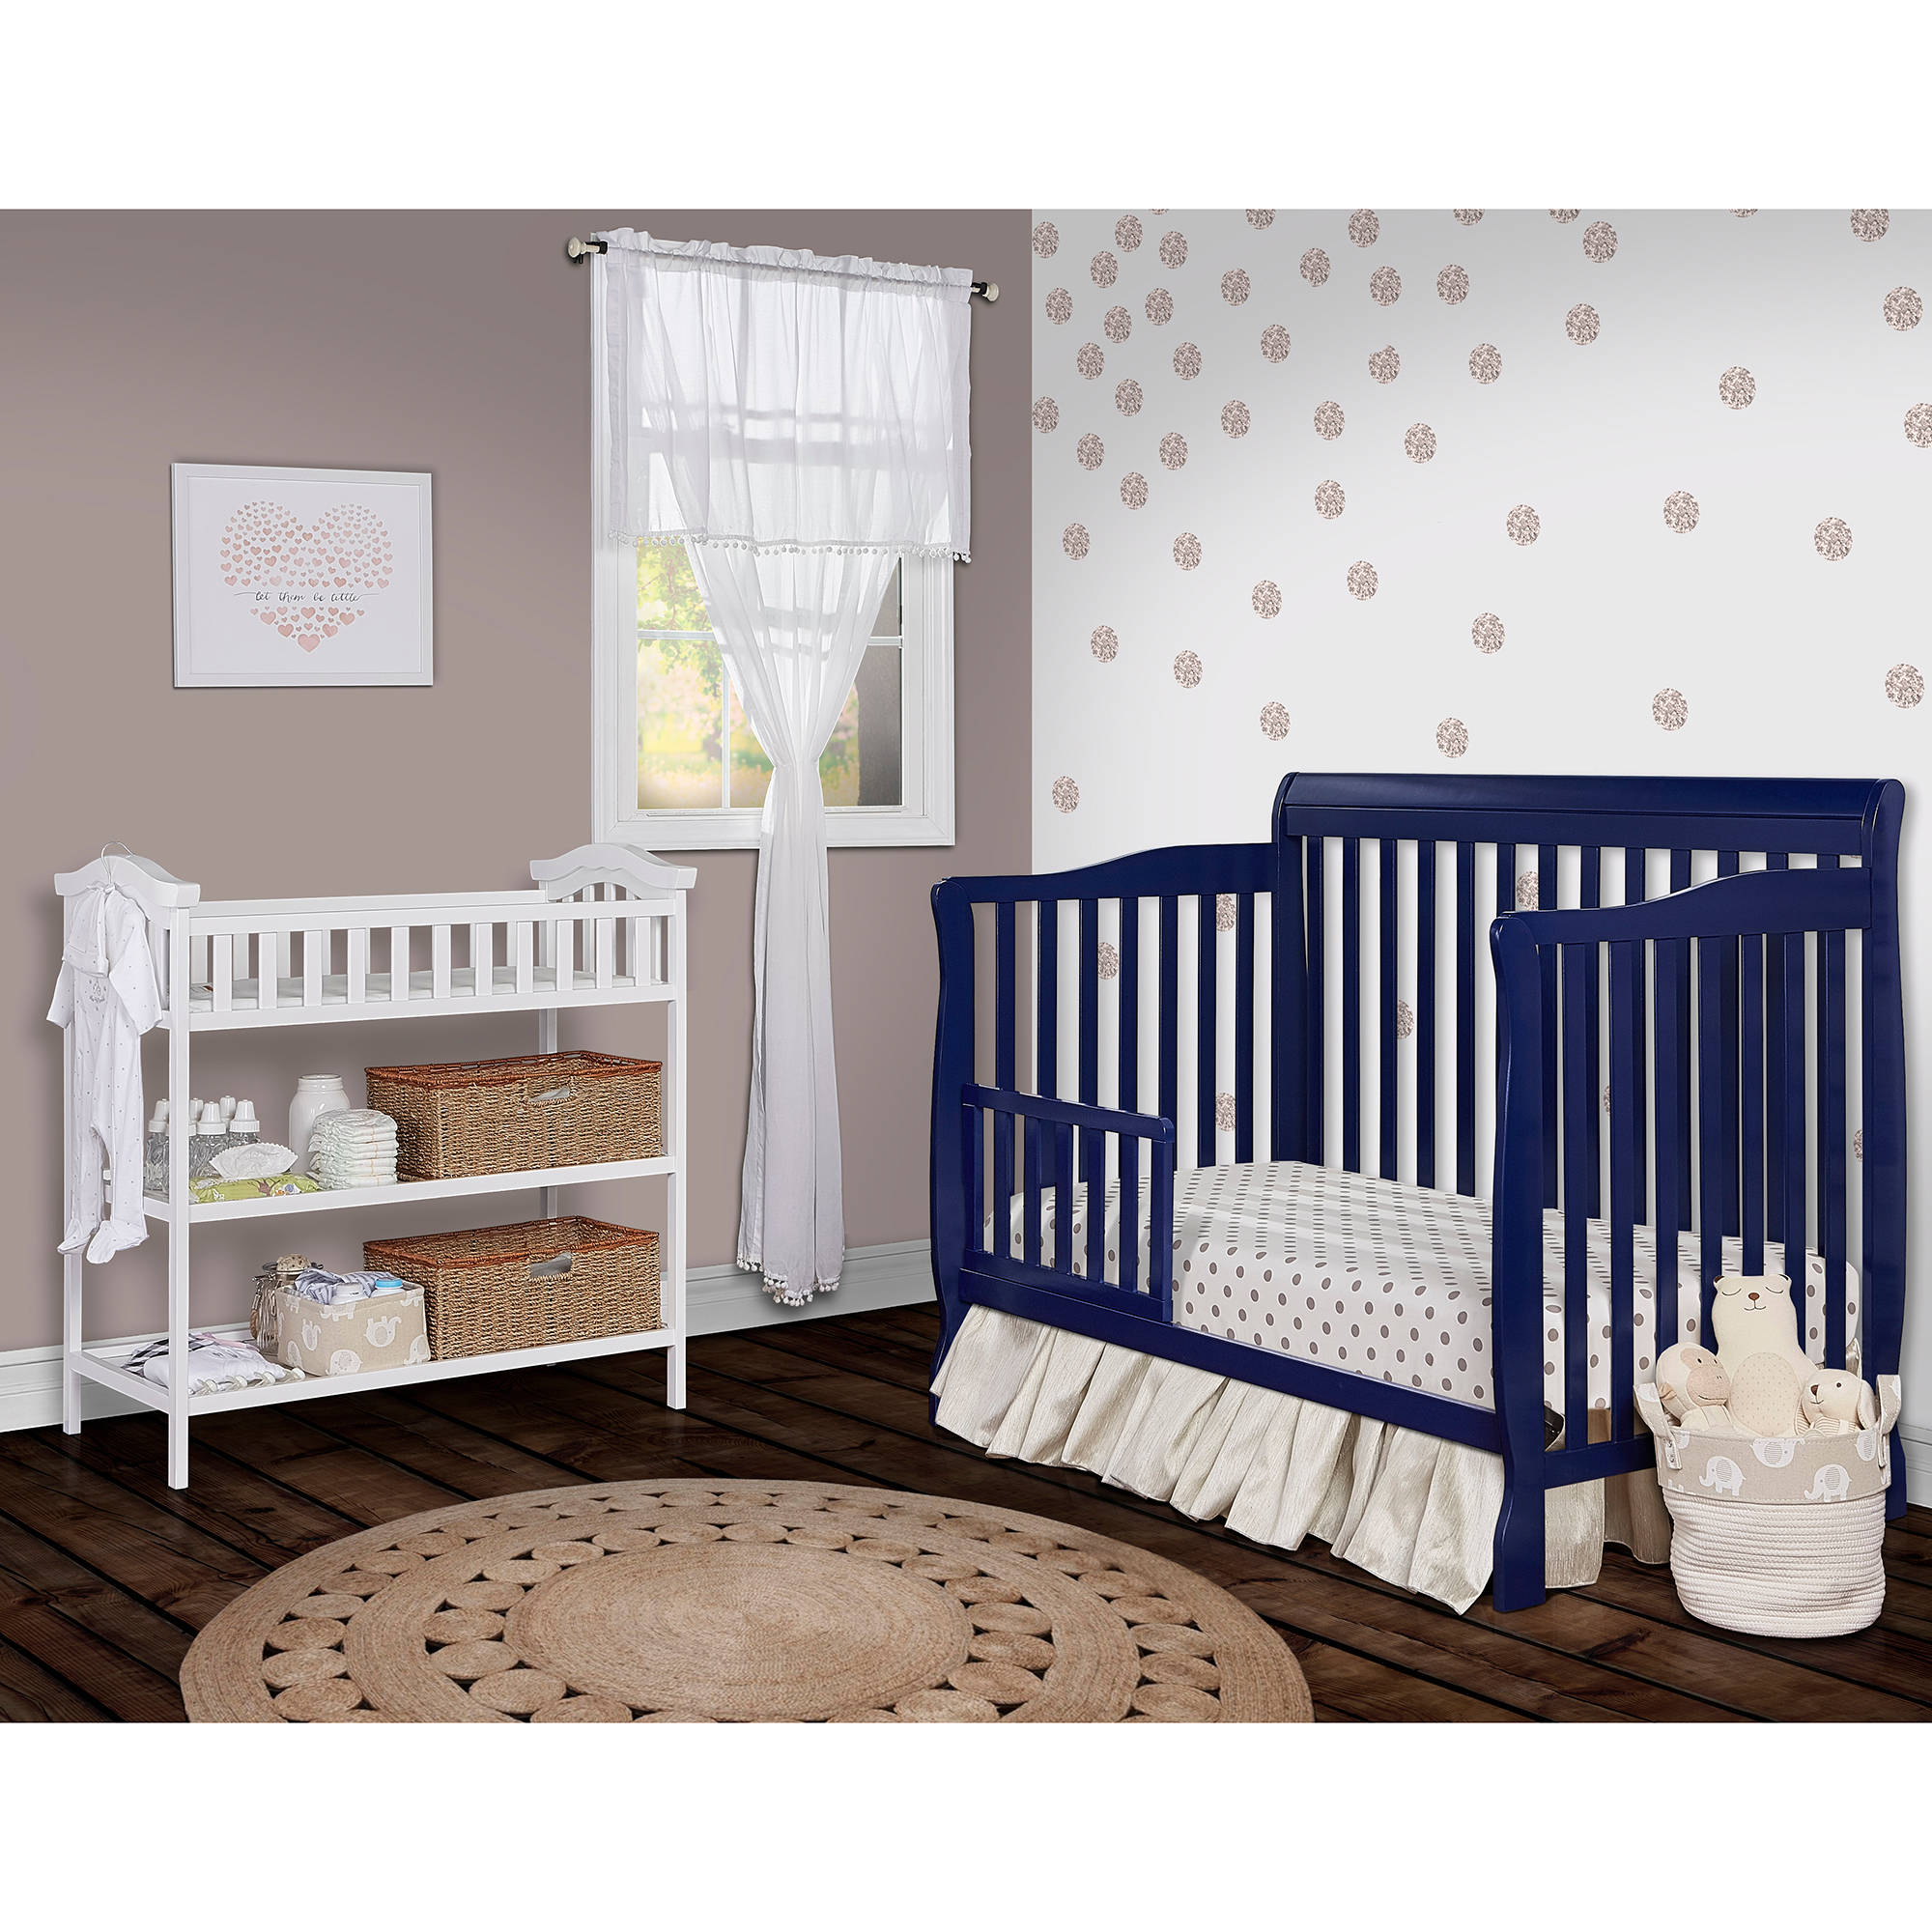 a l s itm convertible baby solano innerspring beach mattress with crib cribs i dream in